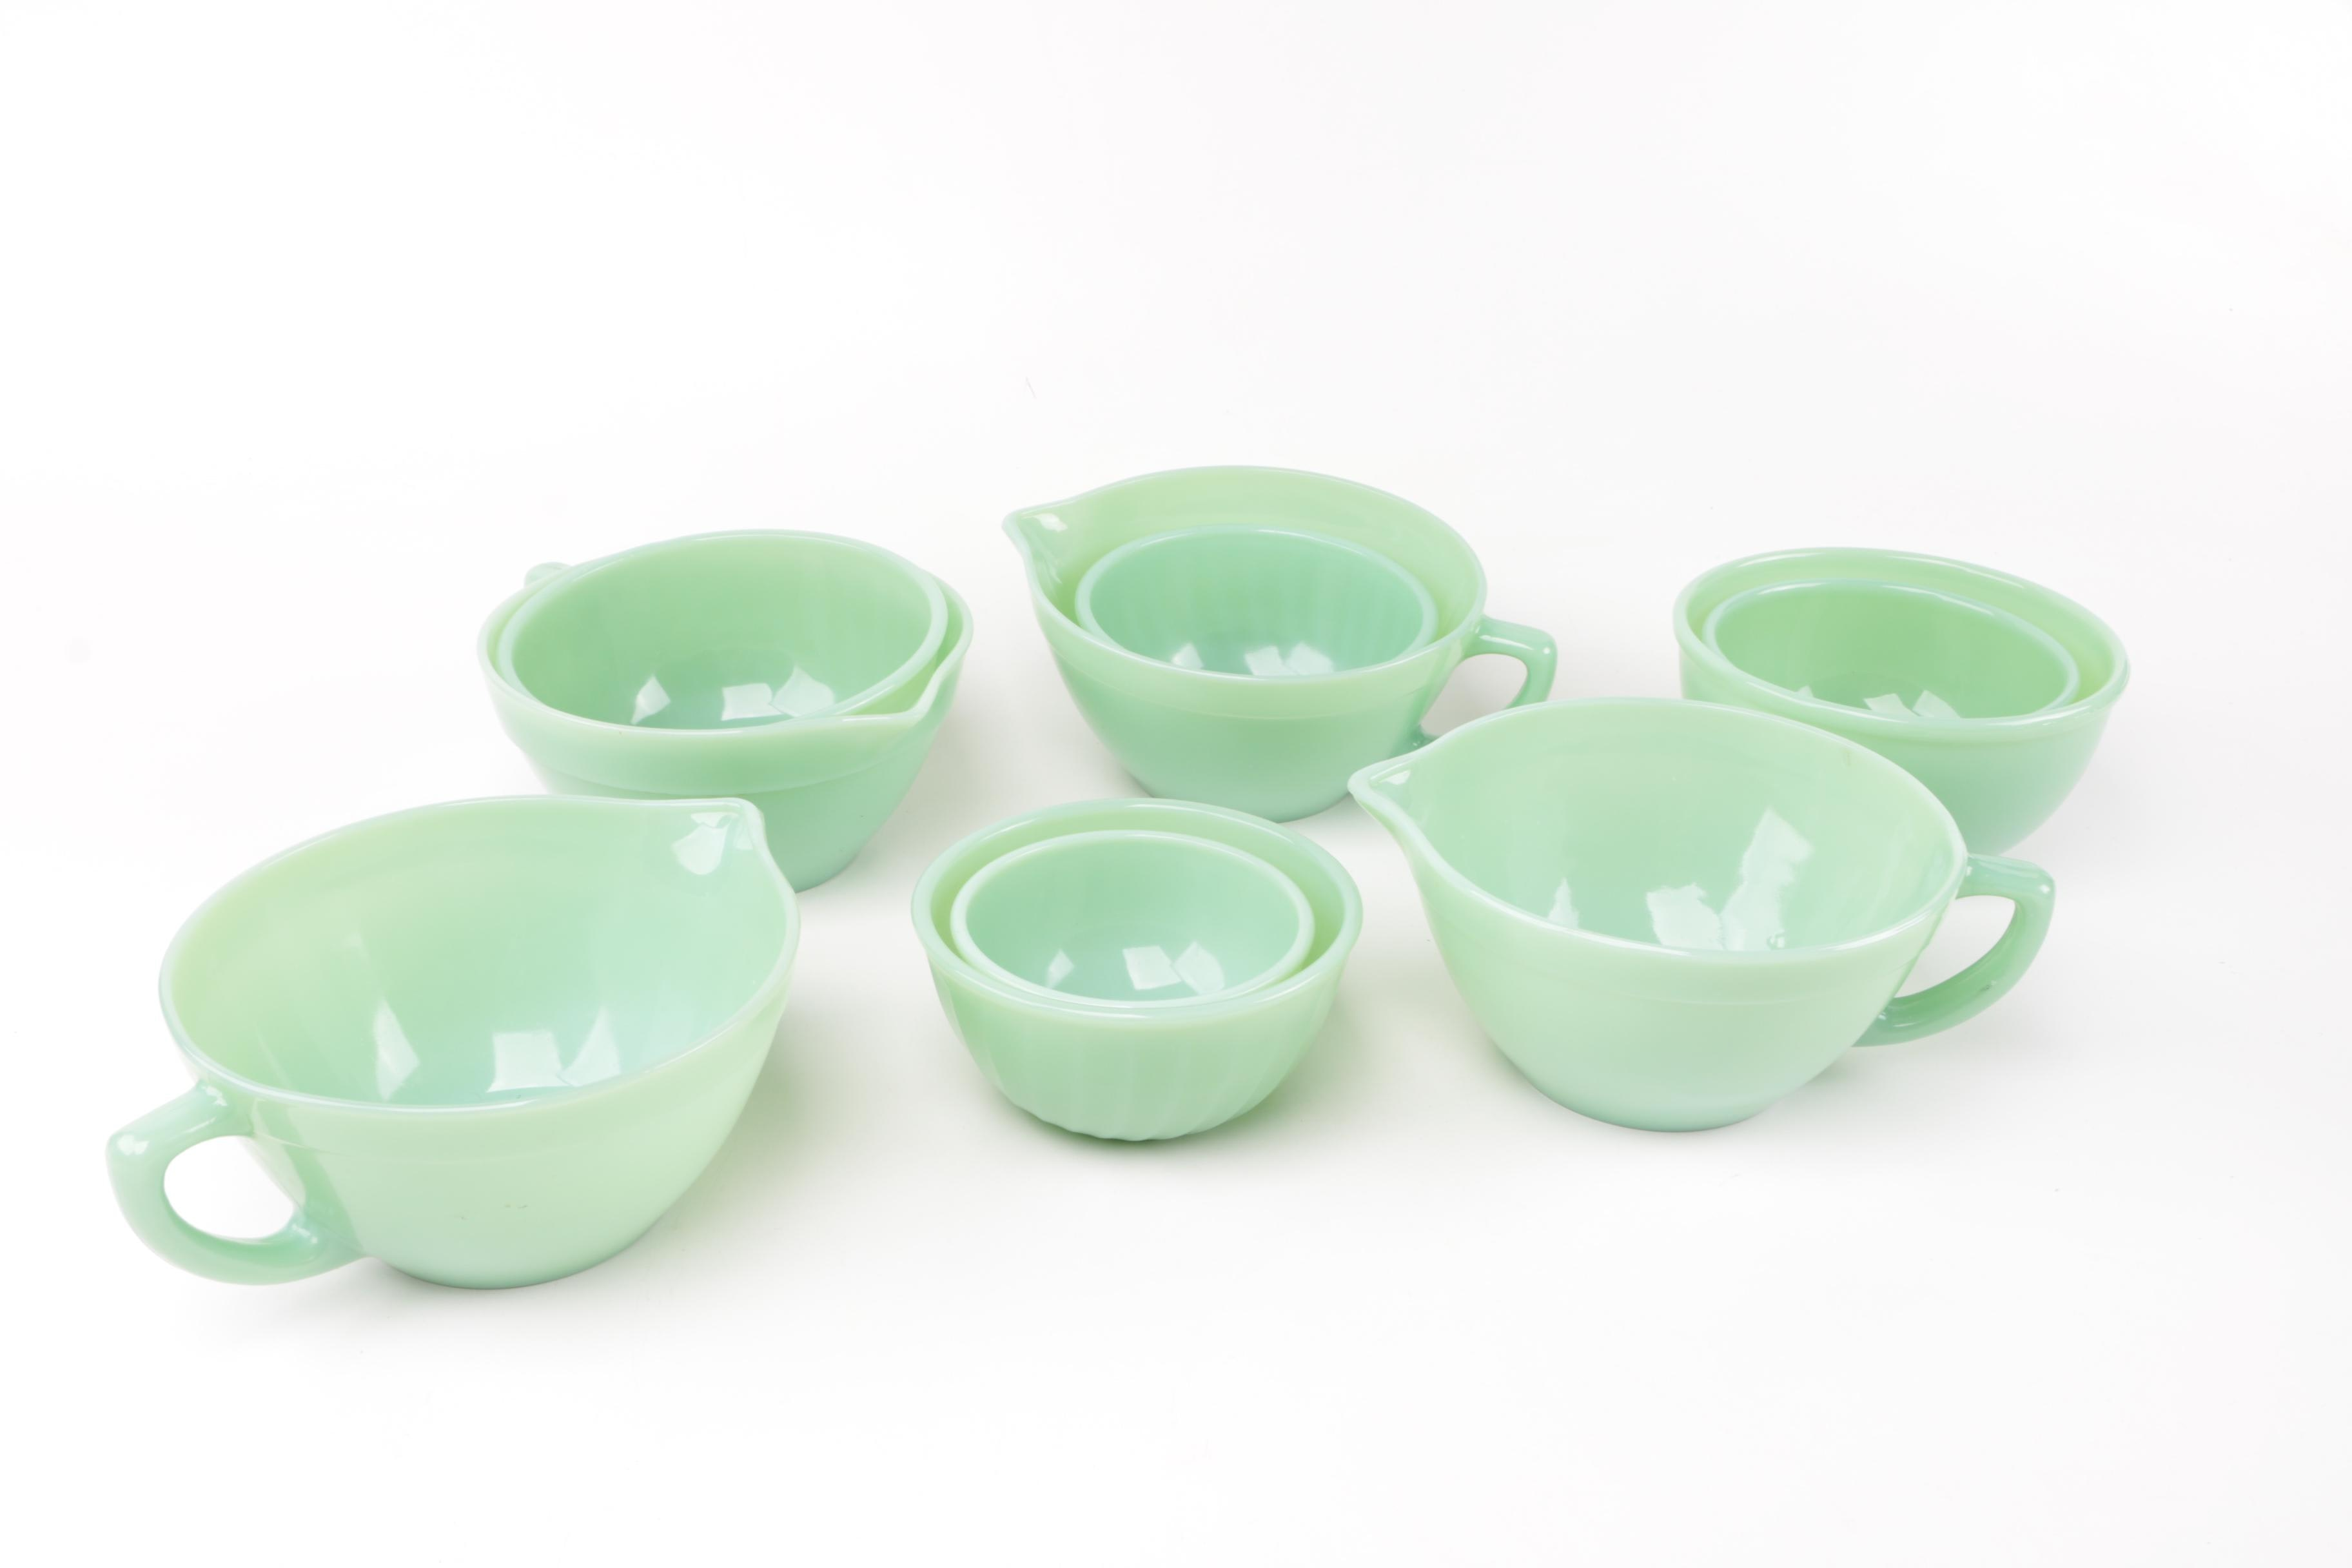 Fire-King Jadeite Mixing Bowls